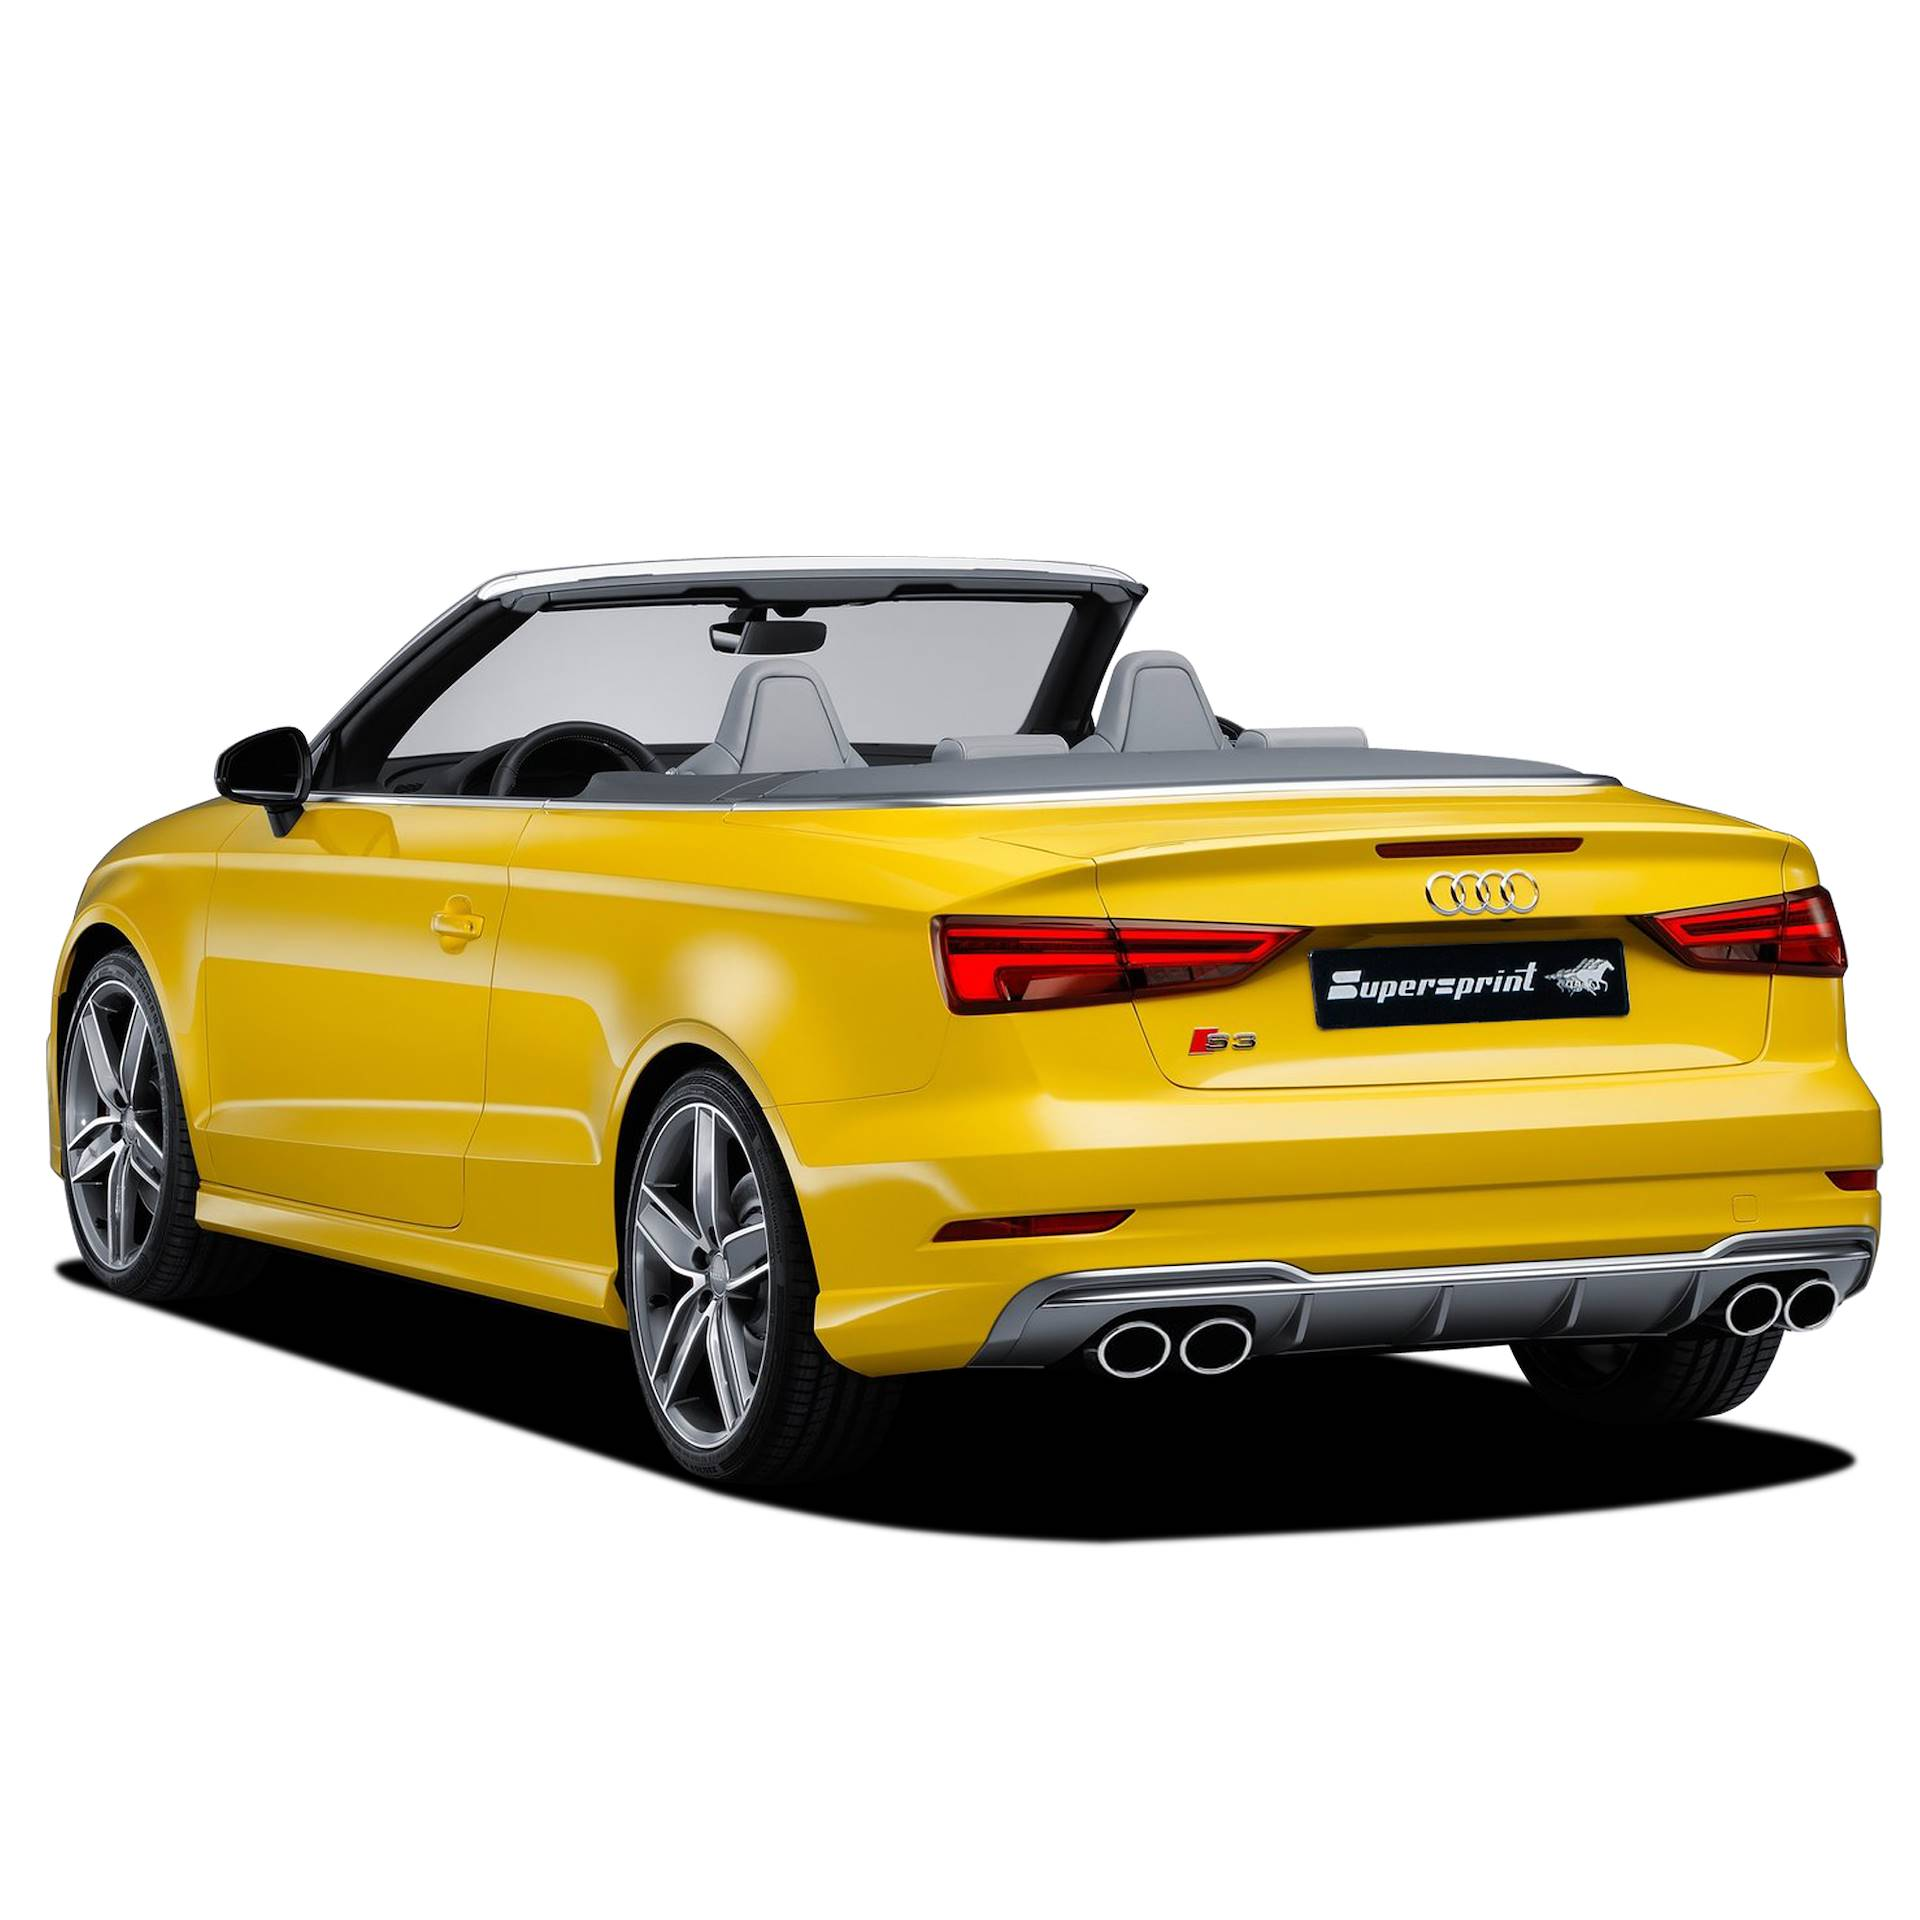 audi s3 8v cabrio quattro 2 0 tfsi 310 hp 2016 audi s rs exhaust systems. Black Bedroom Furniture Sets. Home Design Ideas